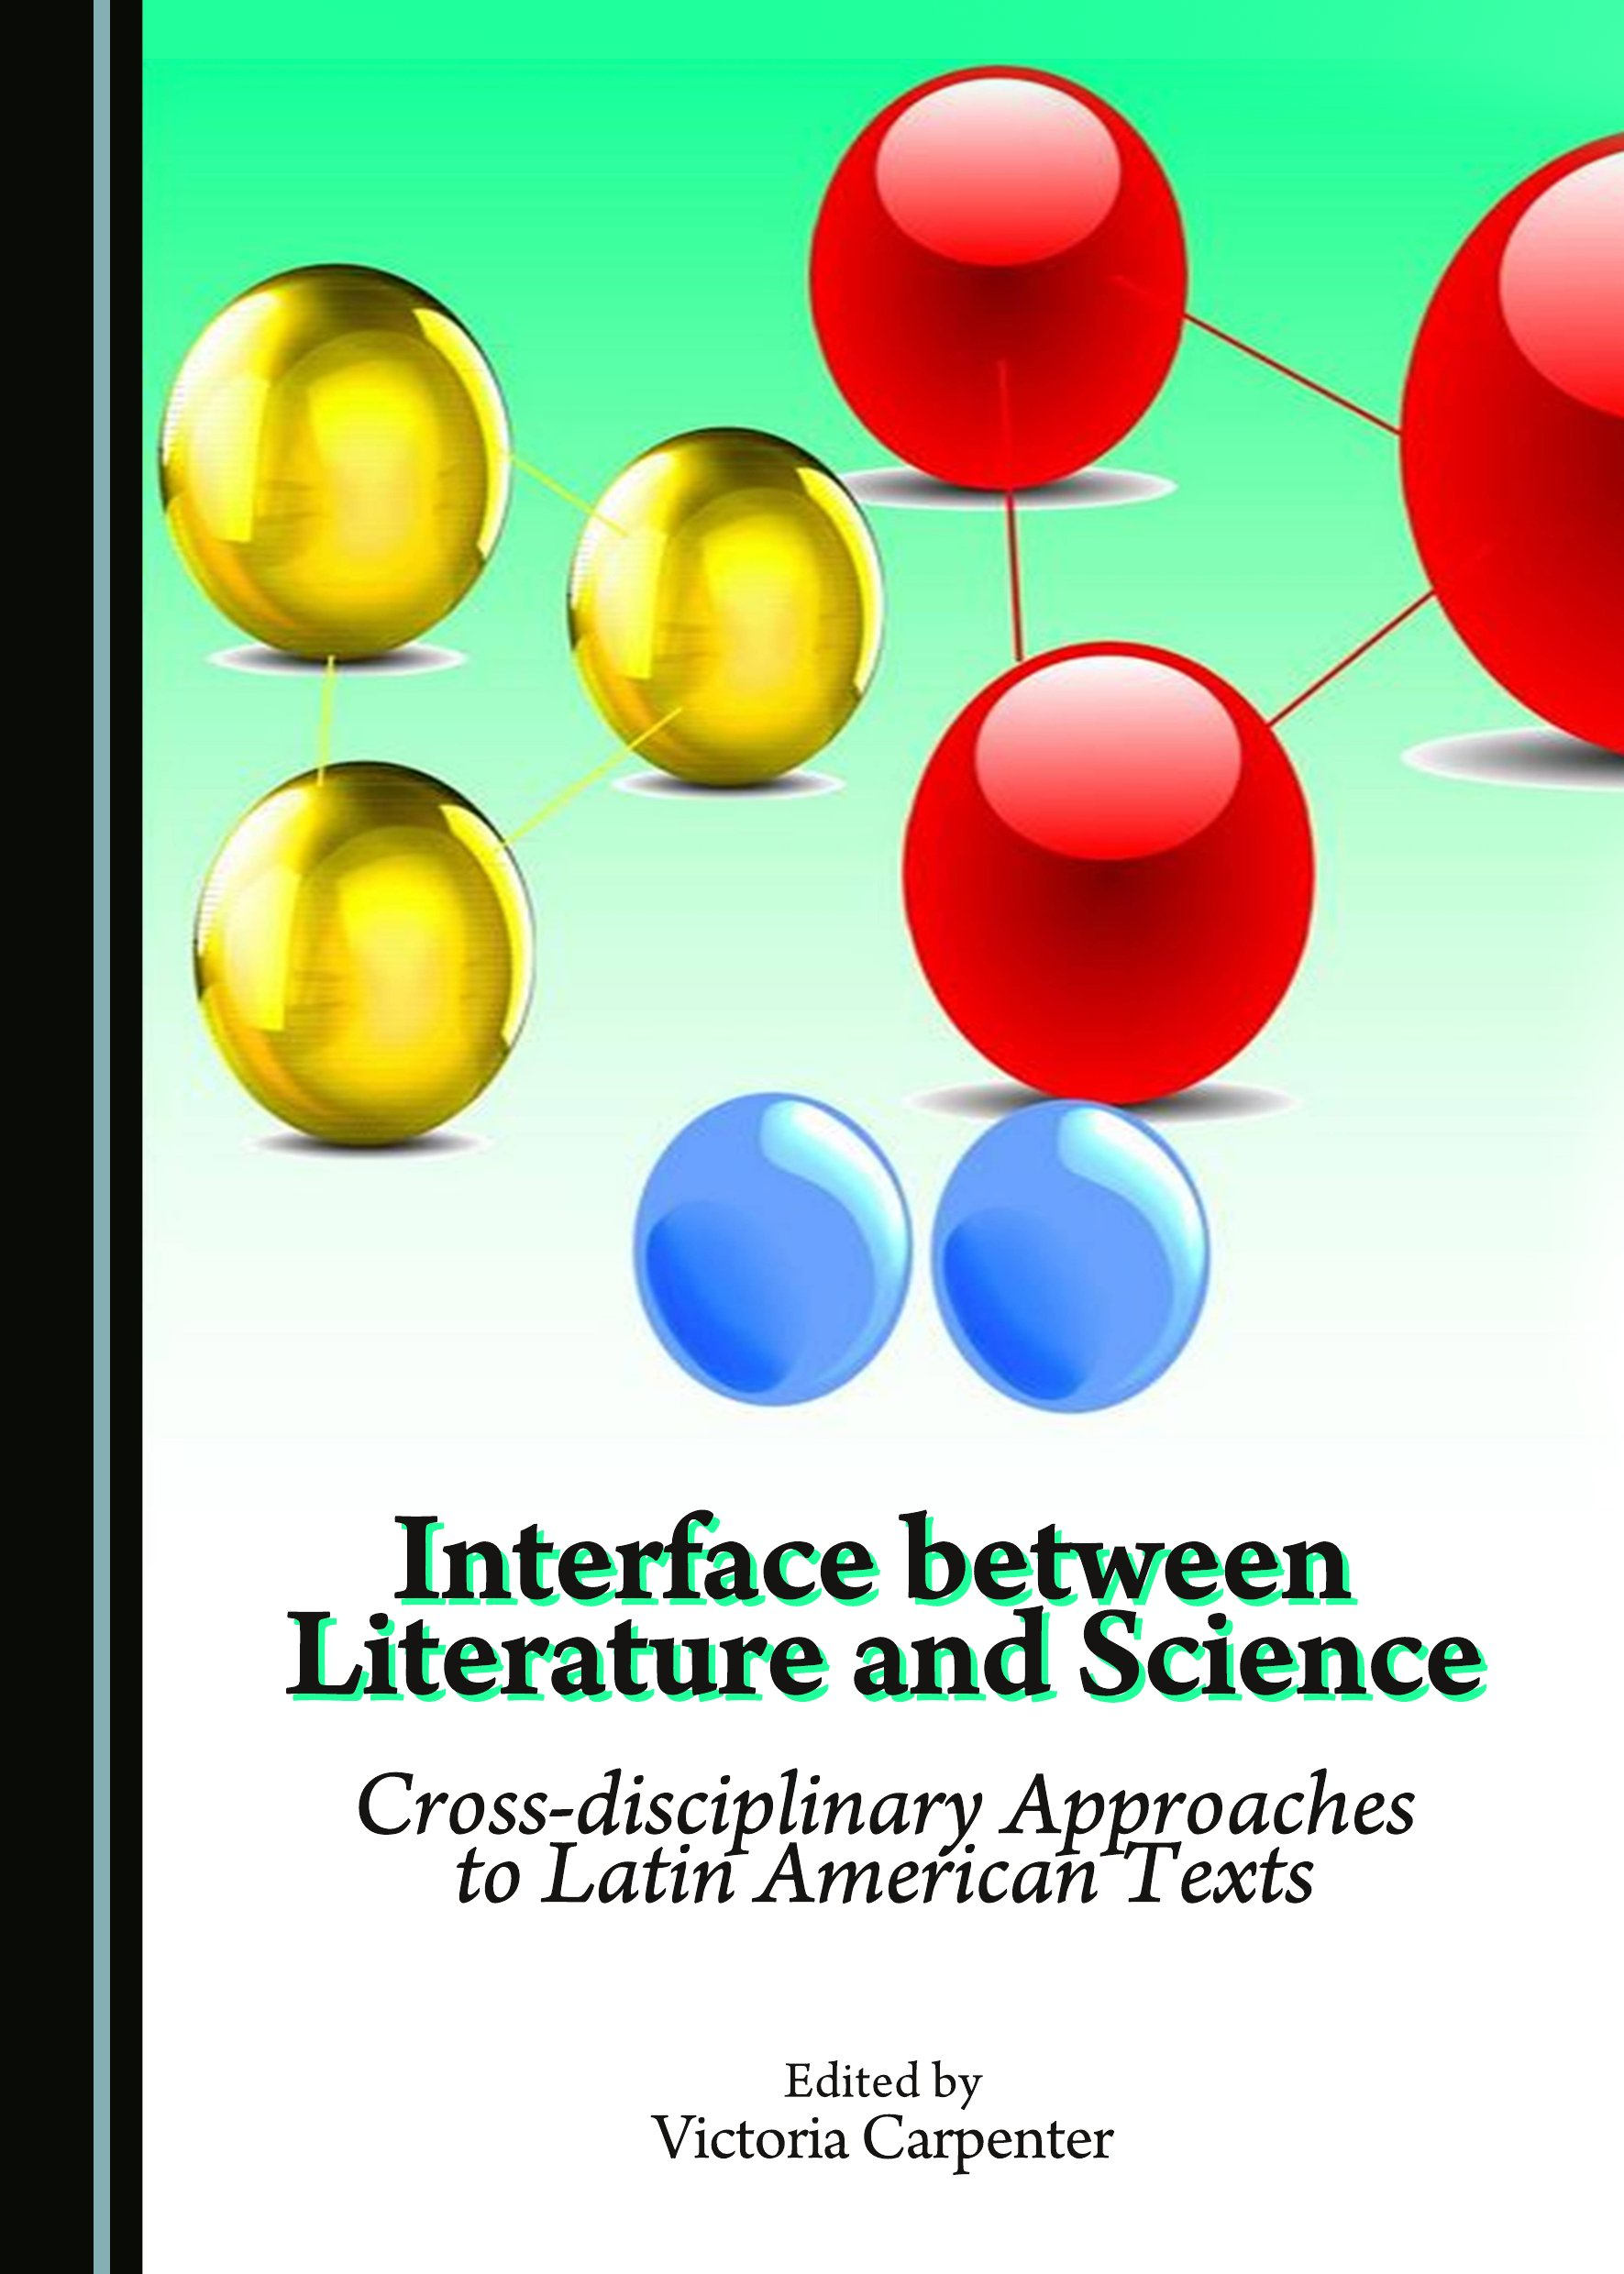 Interface between Literature and Science: Cross-disciplinary Approaches to Latin American Texts